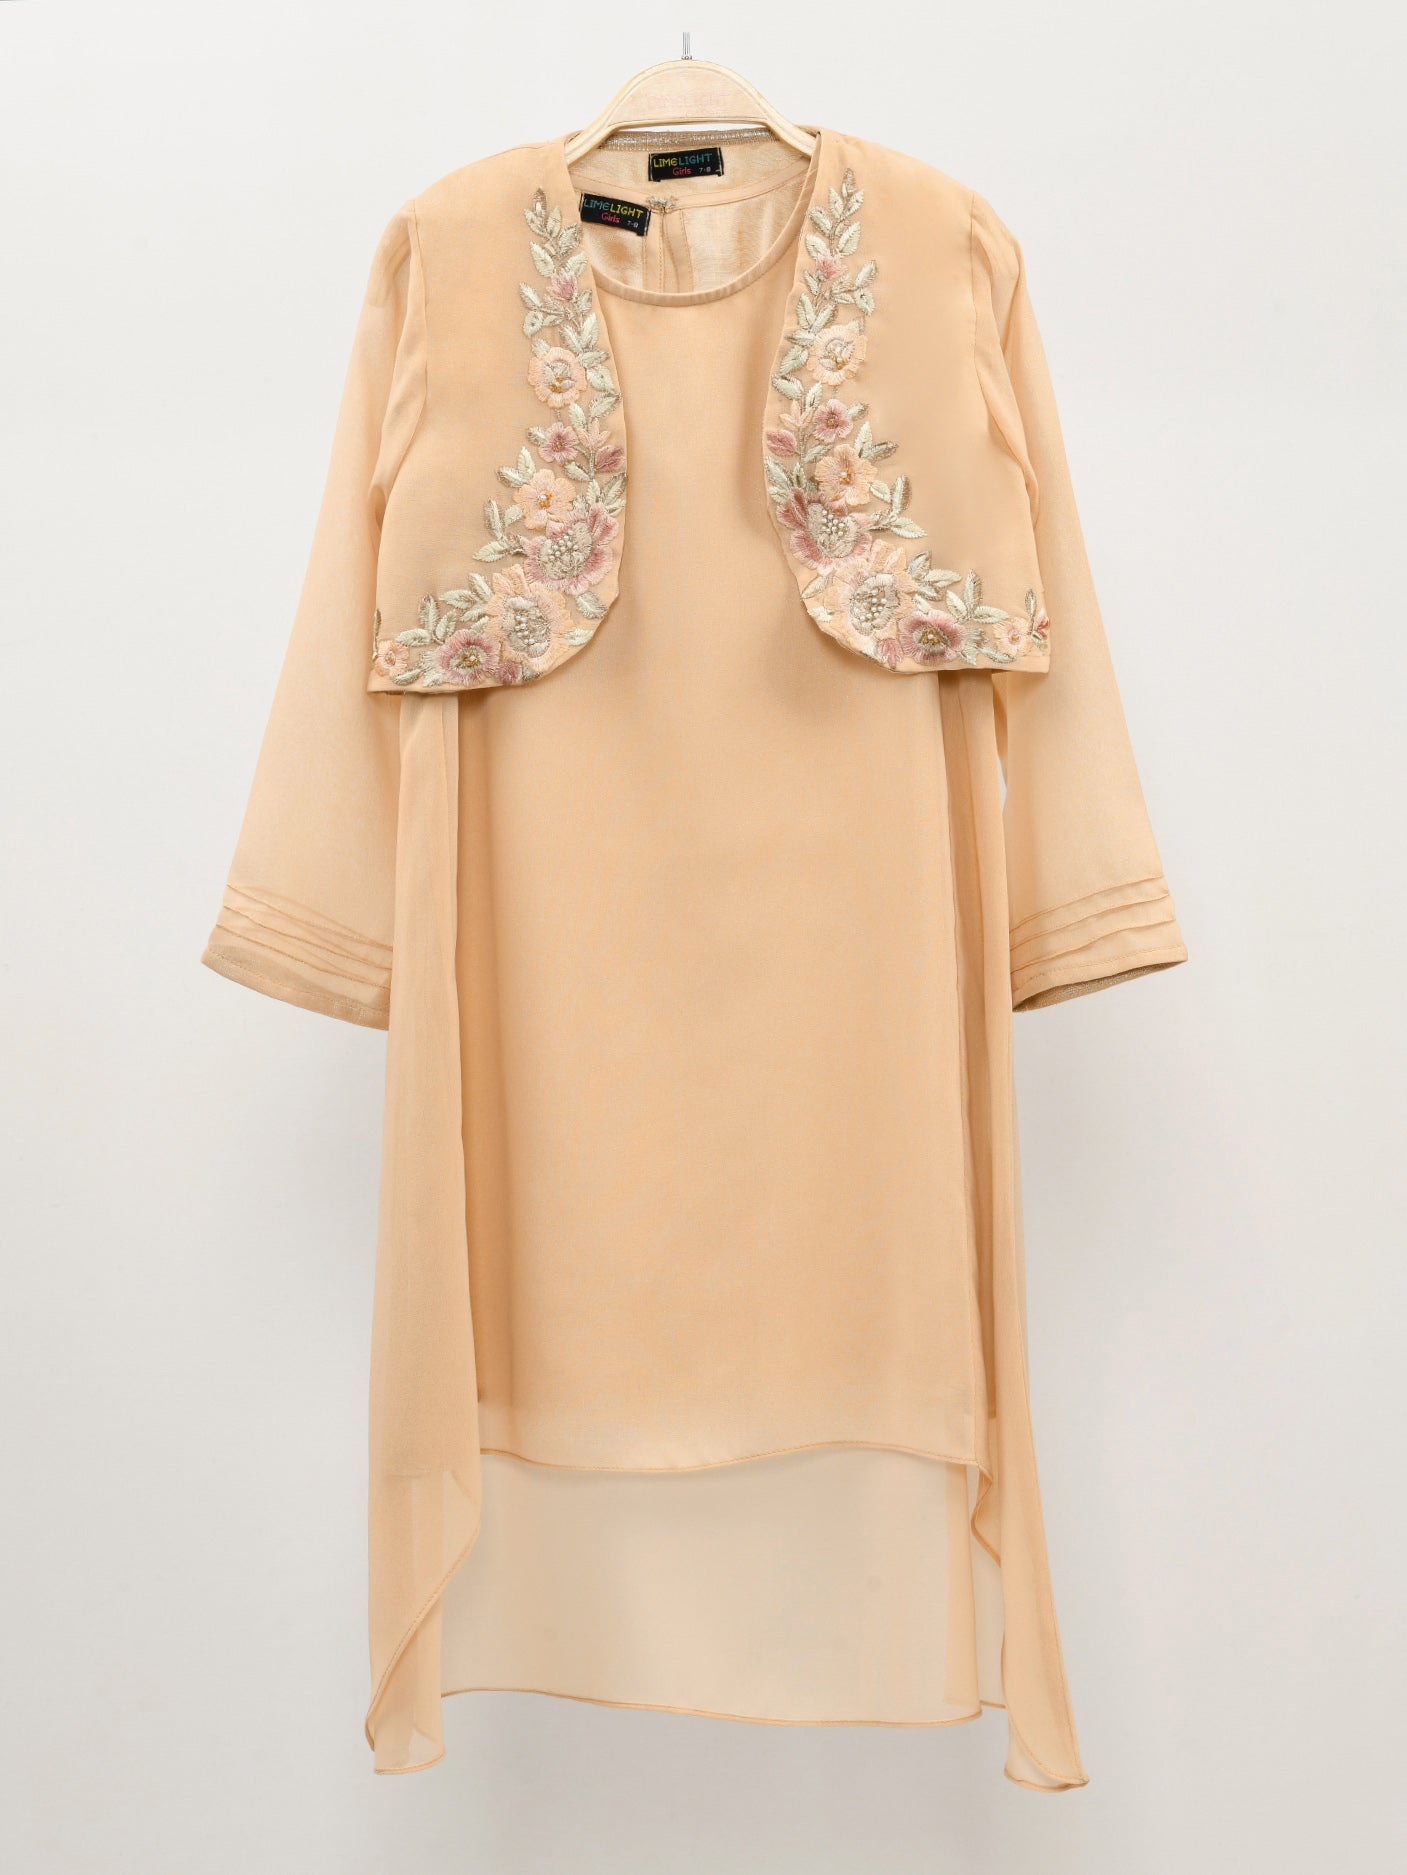 Limelight Online Ruffle Sleeved Coat - Yellow COT89-SML-YLW